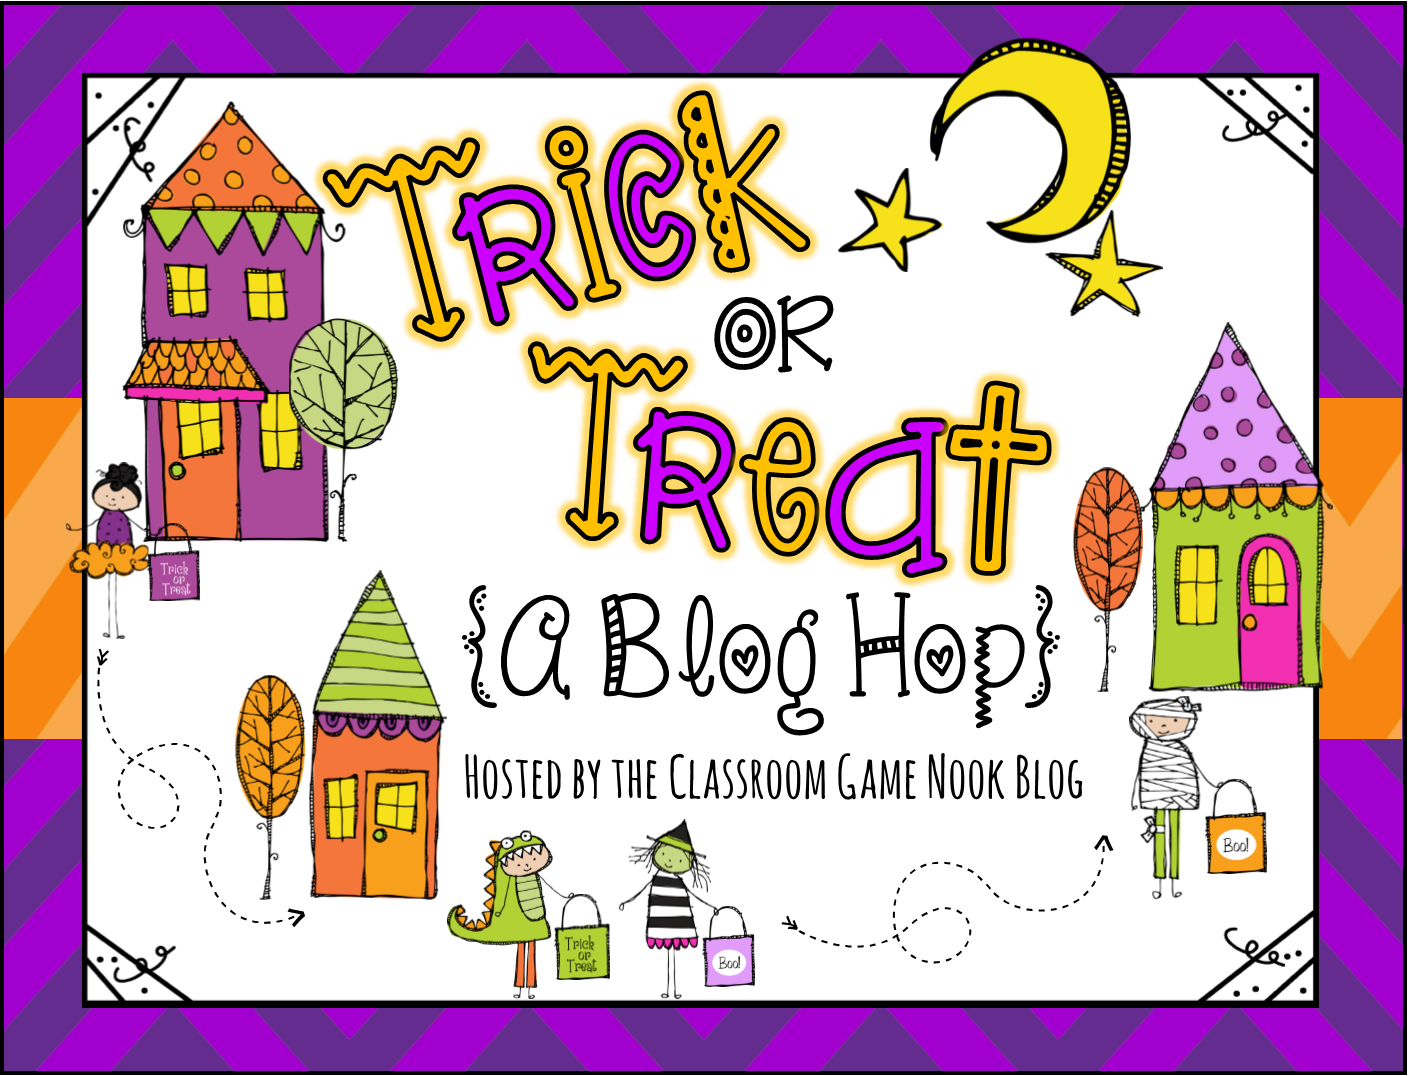 Halloween games clipart image library stock Mrs. Naufal's Nook: October 2015 image library stock